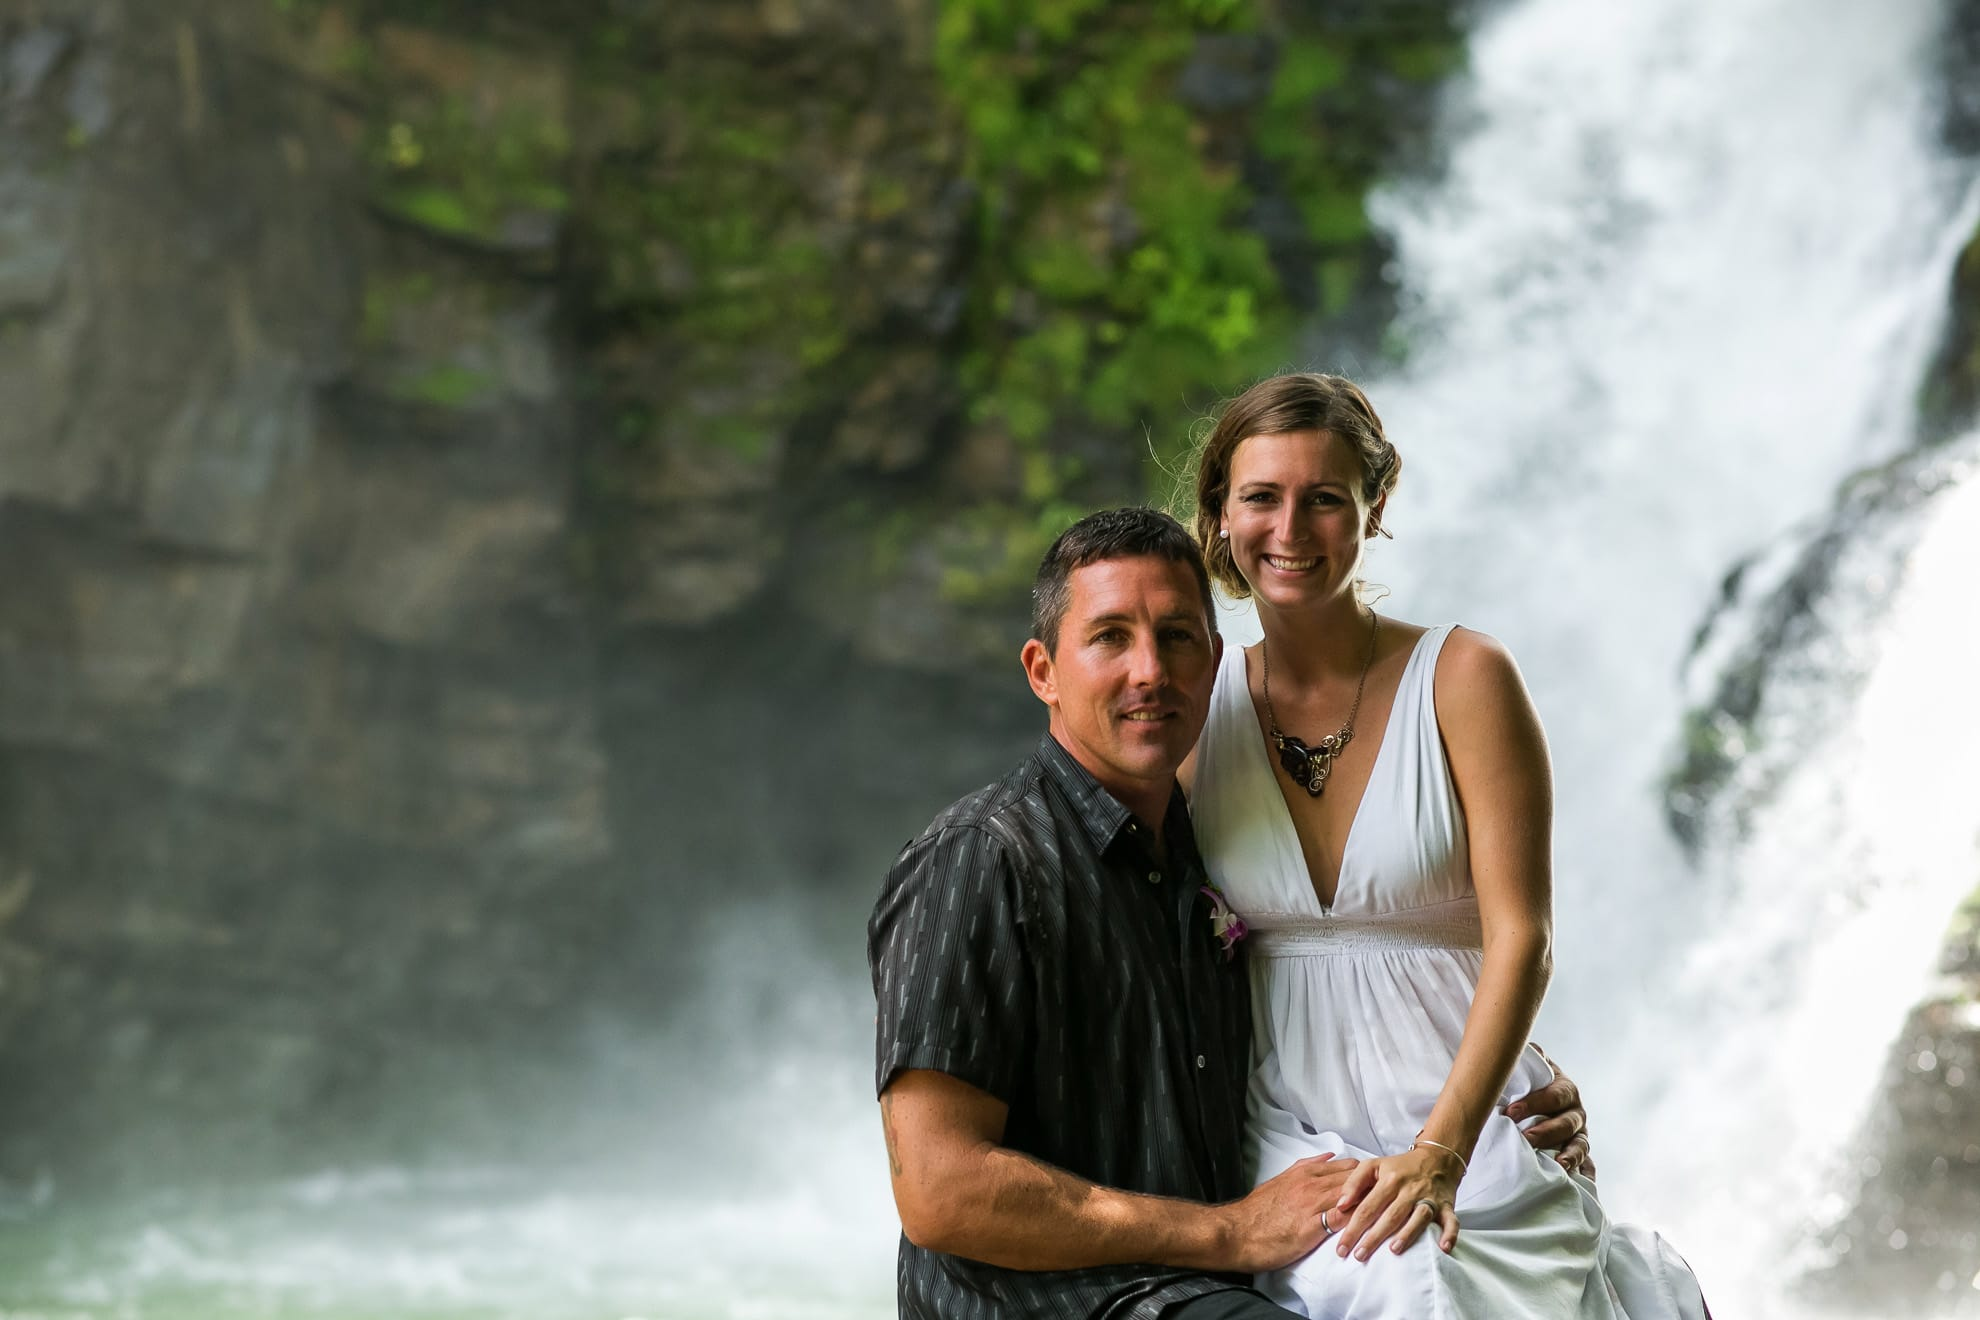 Wedding at Nauyaca Waterfalls, Costa Rica